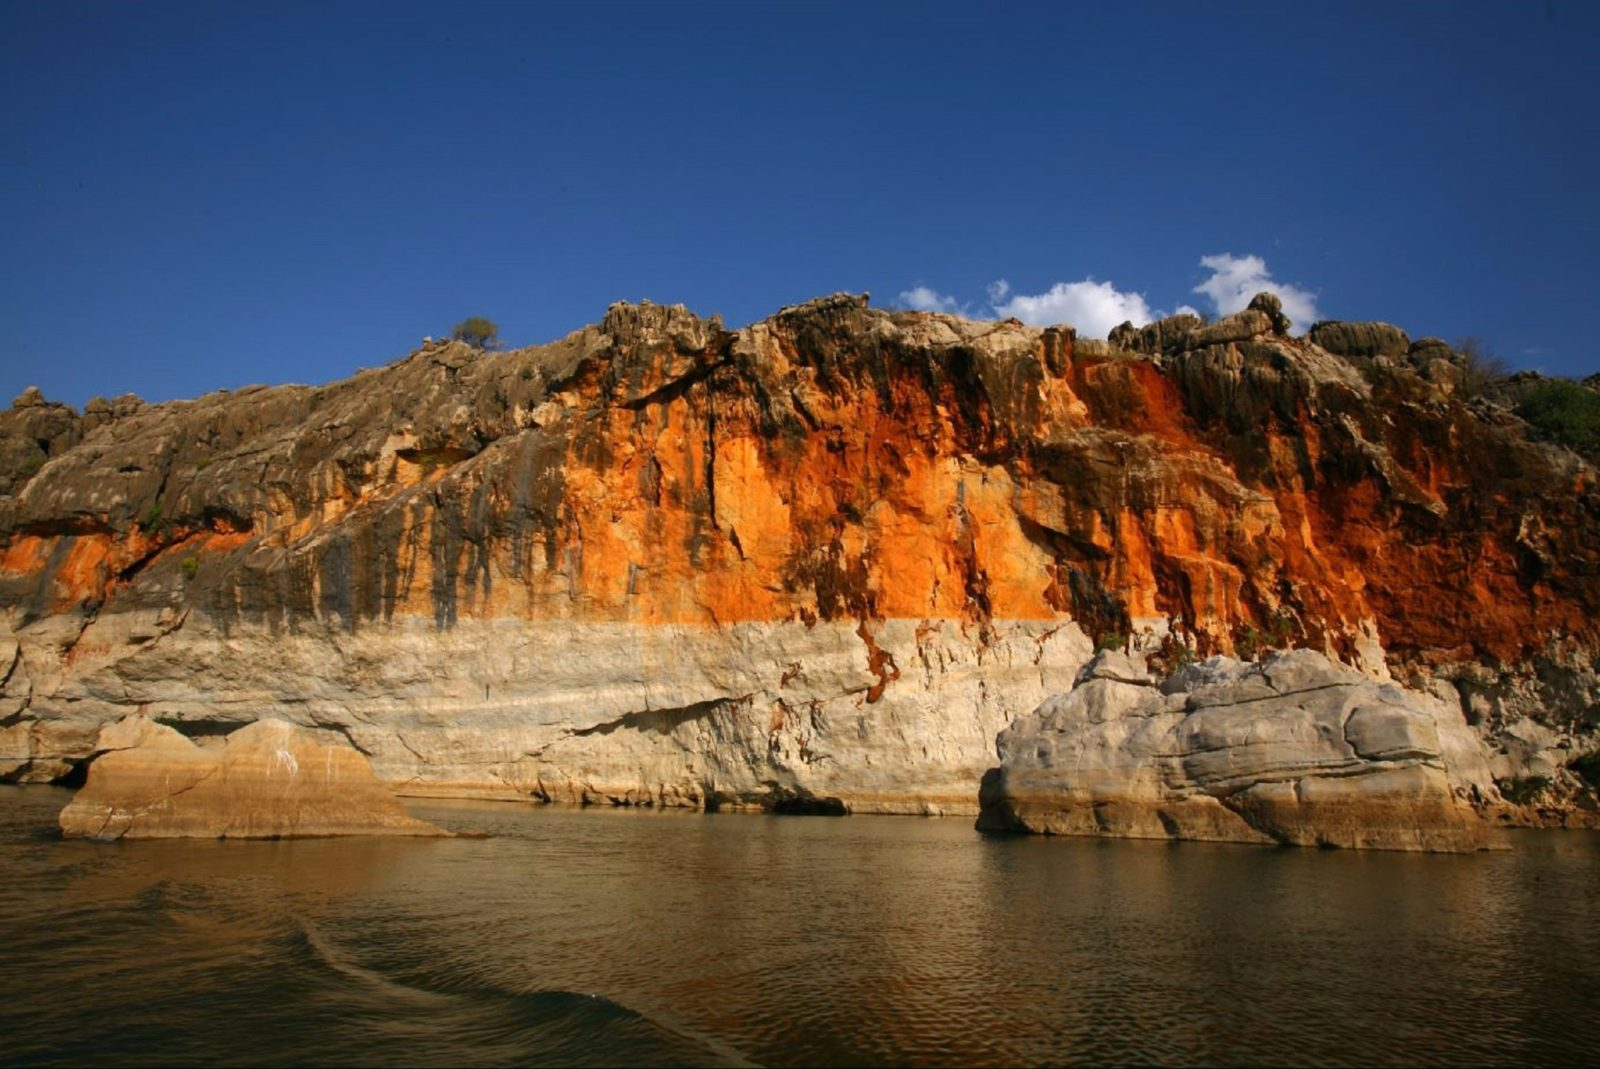 Geikie Gorge National Park, Fitzroy Crossing, Western Australia